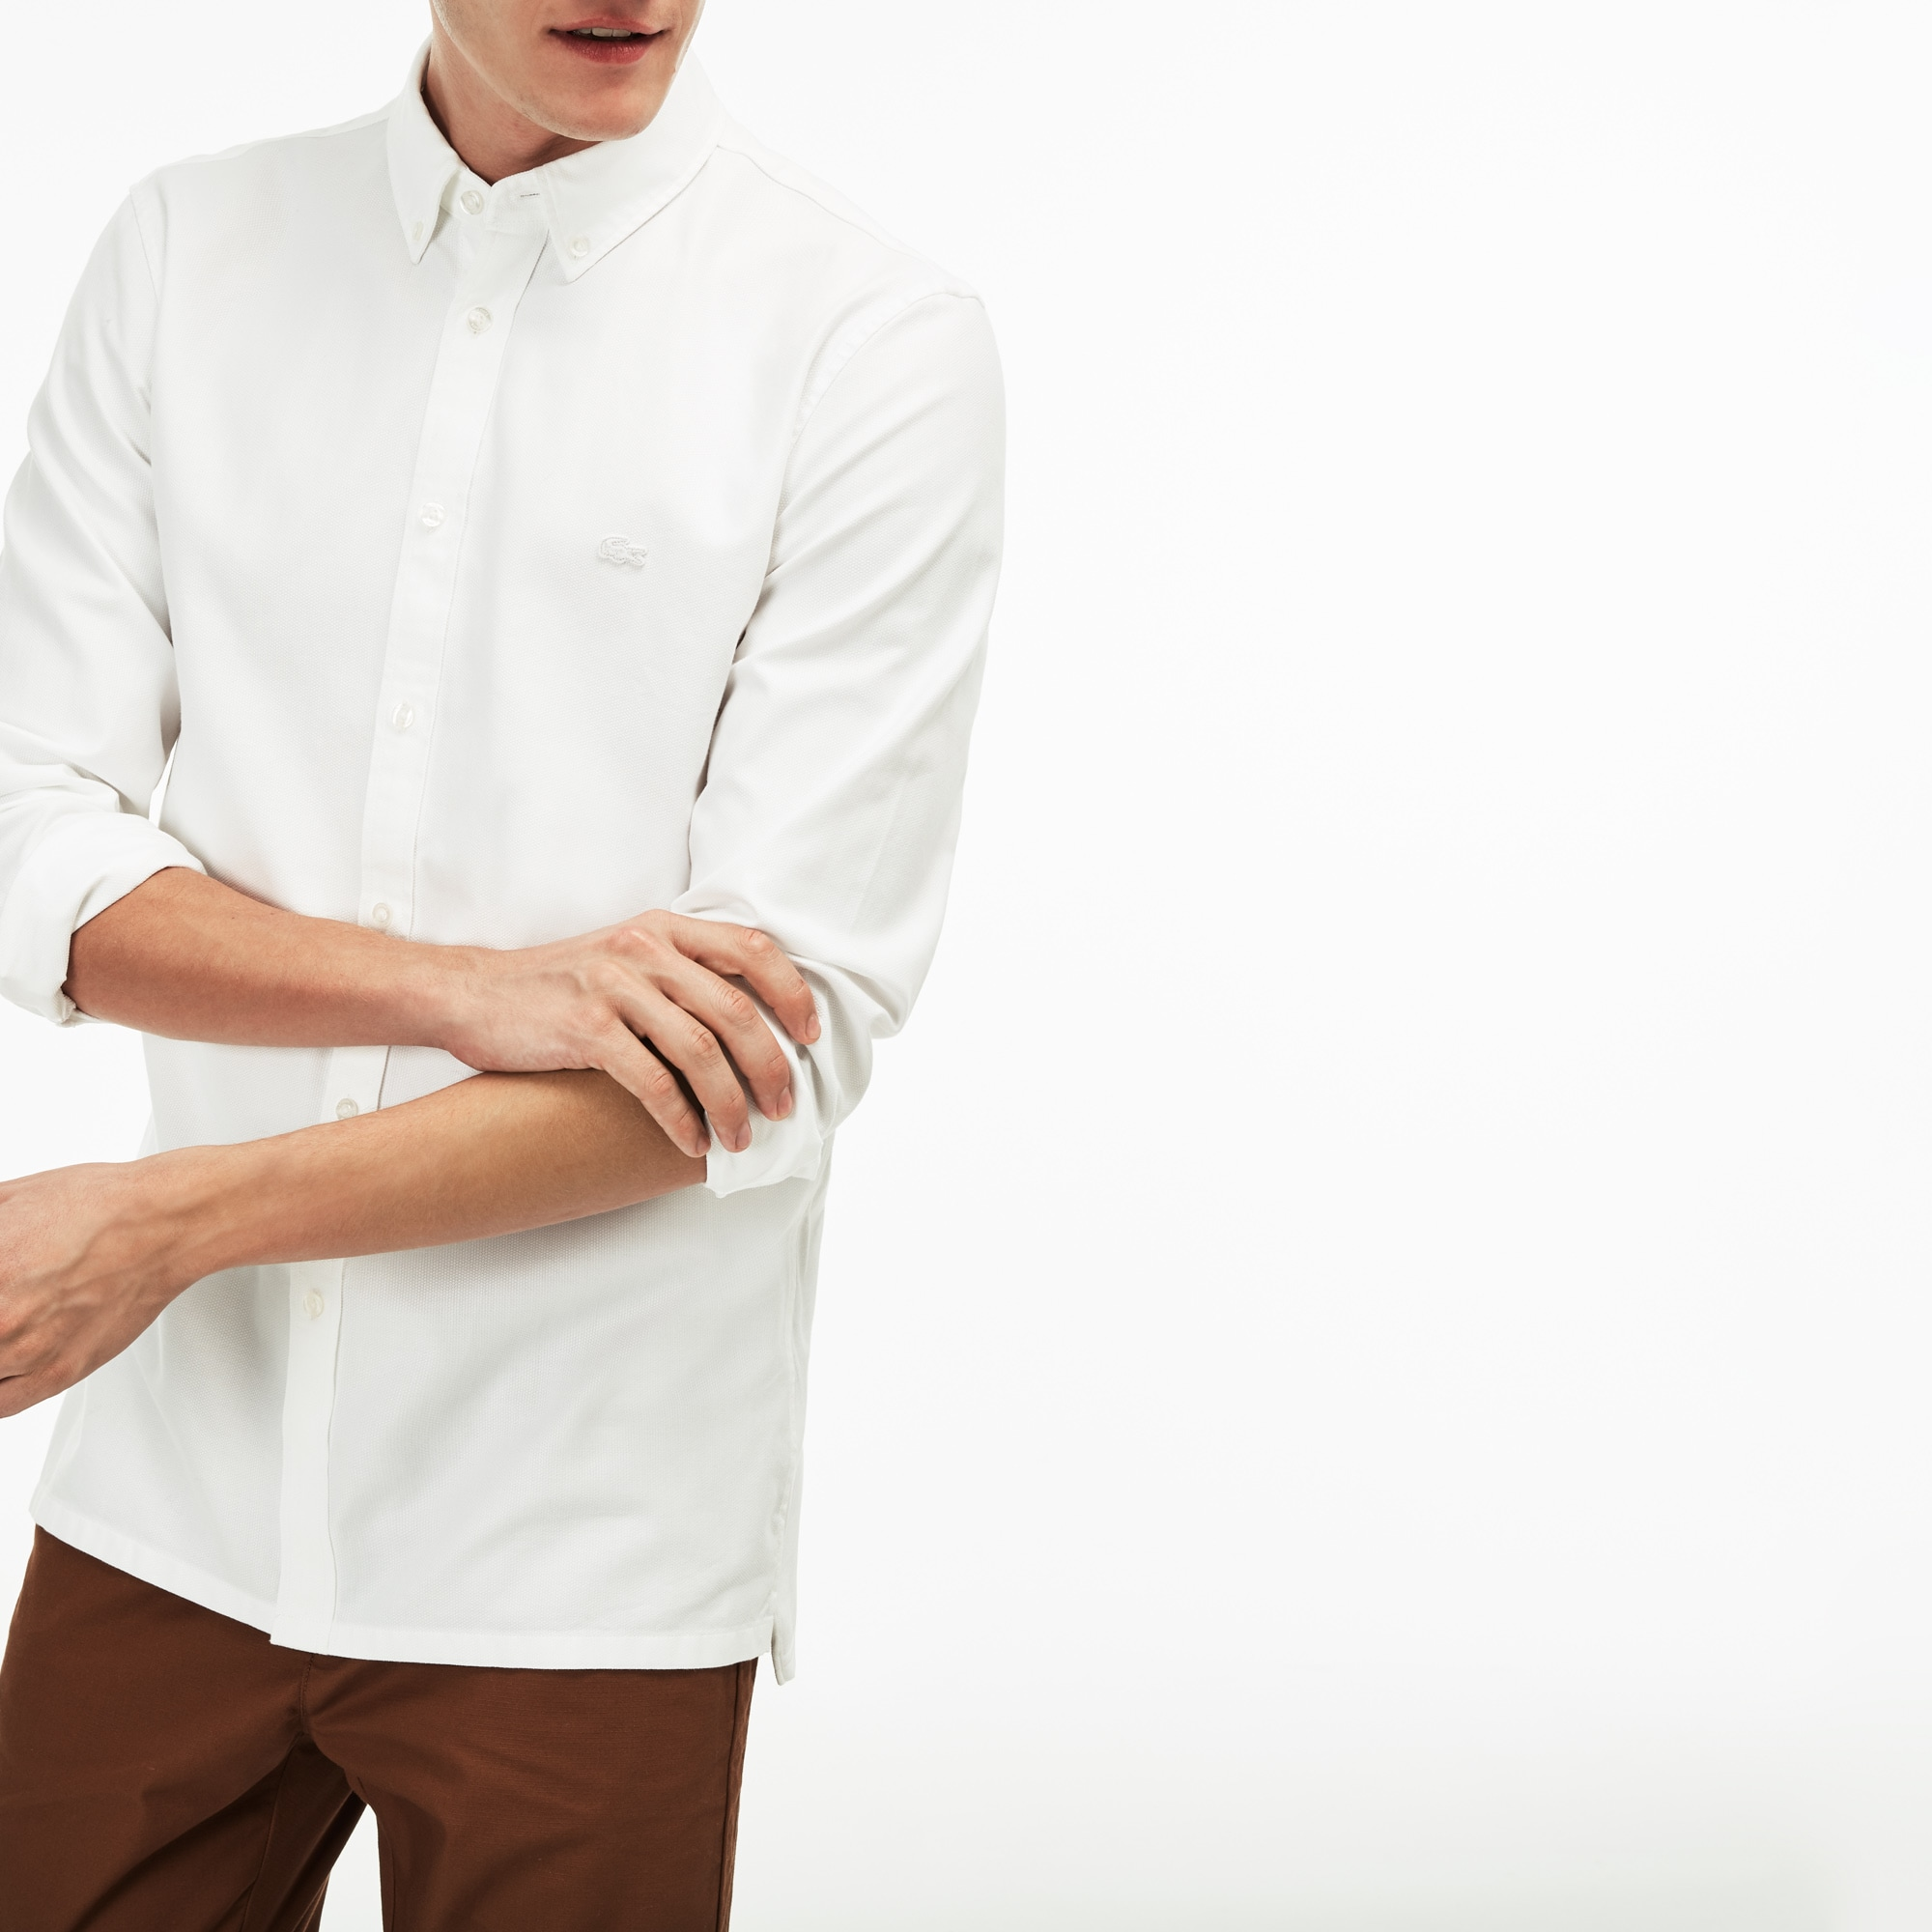 Lacoste MOTION-shirt heren slim fit katoenpiqué